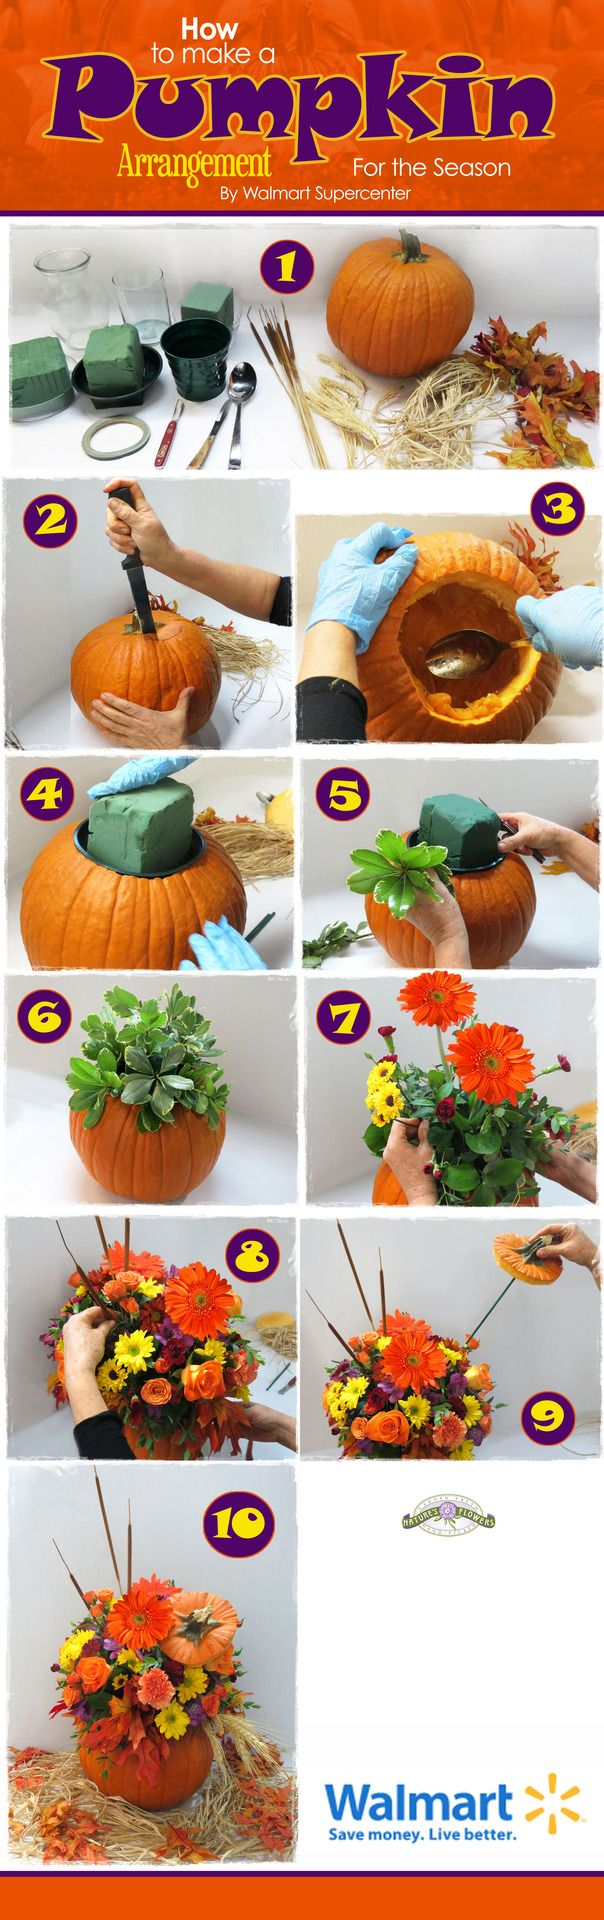 "You Need: Knife, Pumpkin, Vase, Floral Dish or empty can 2-3"" smaller than…"